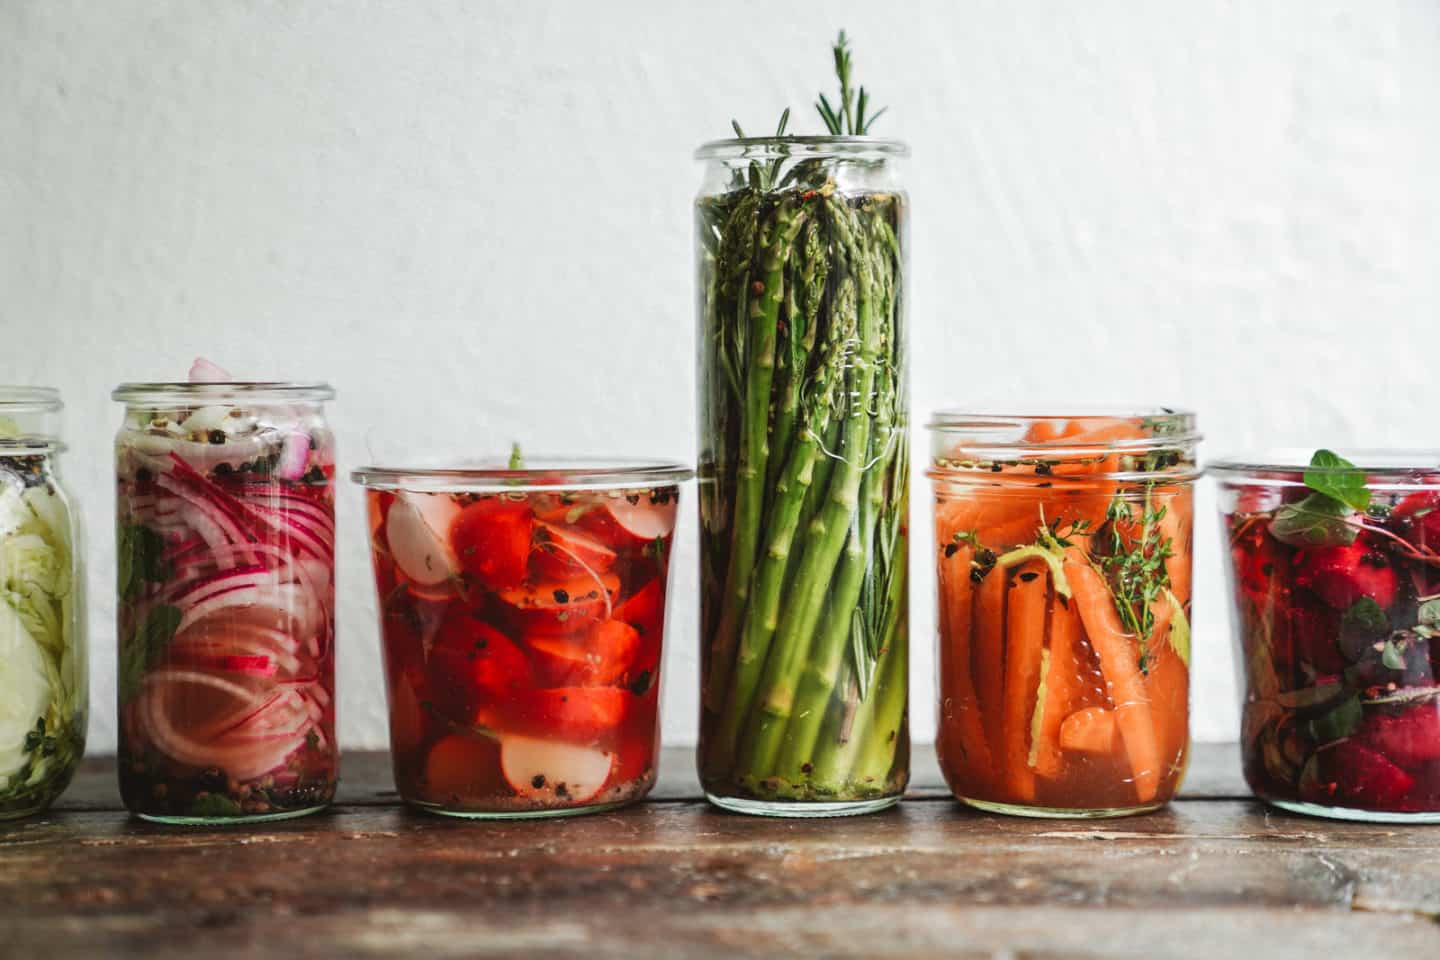 Pickled veggies lined up on wood countertop. A great recipe to make this September.